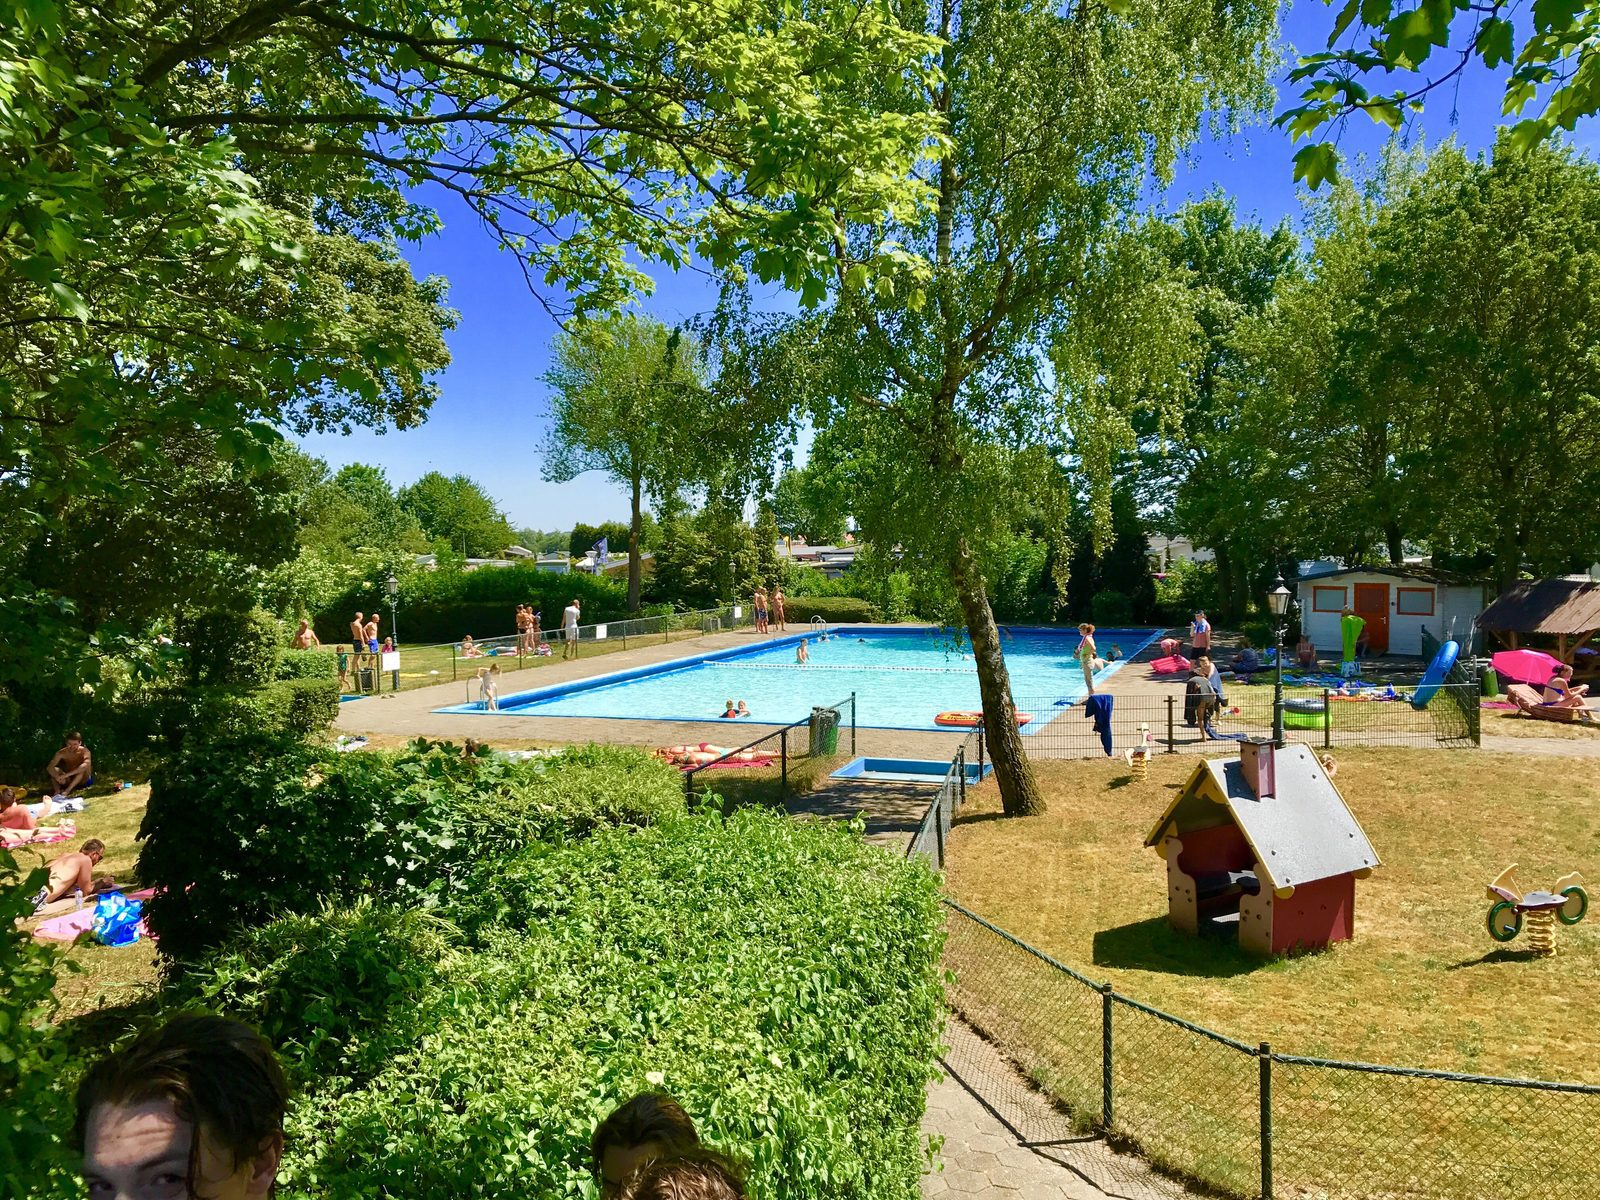 Camping Amalfikust Zwembad Recreational Park Rhederlaagse Meren In Lathum Succes Holidayparcs